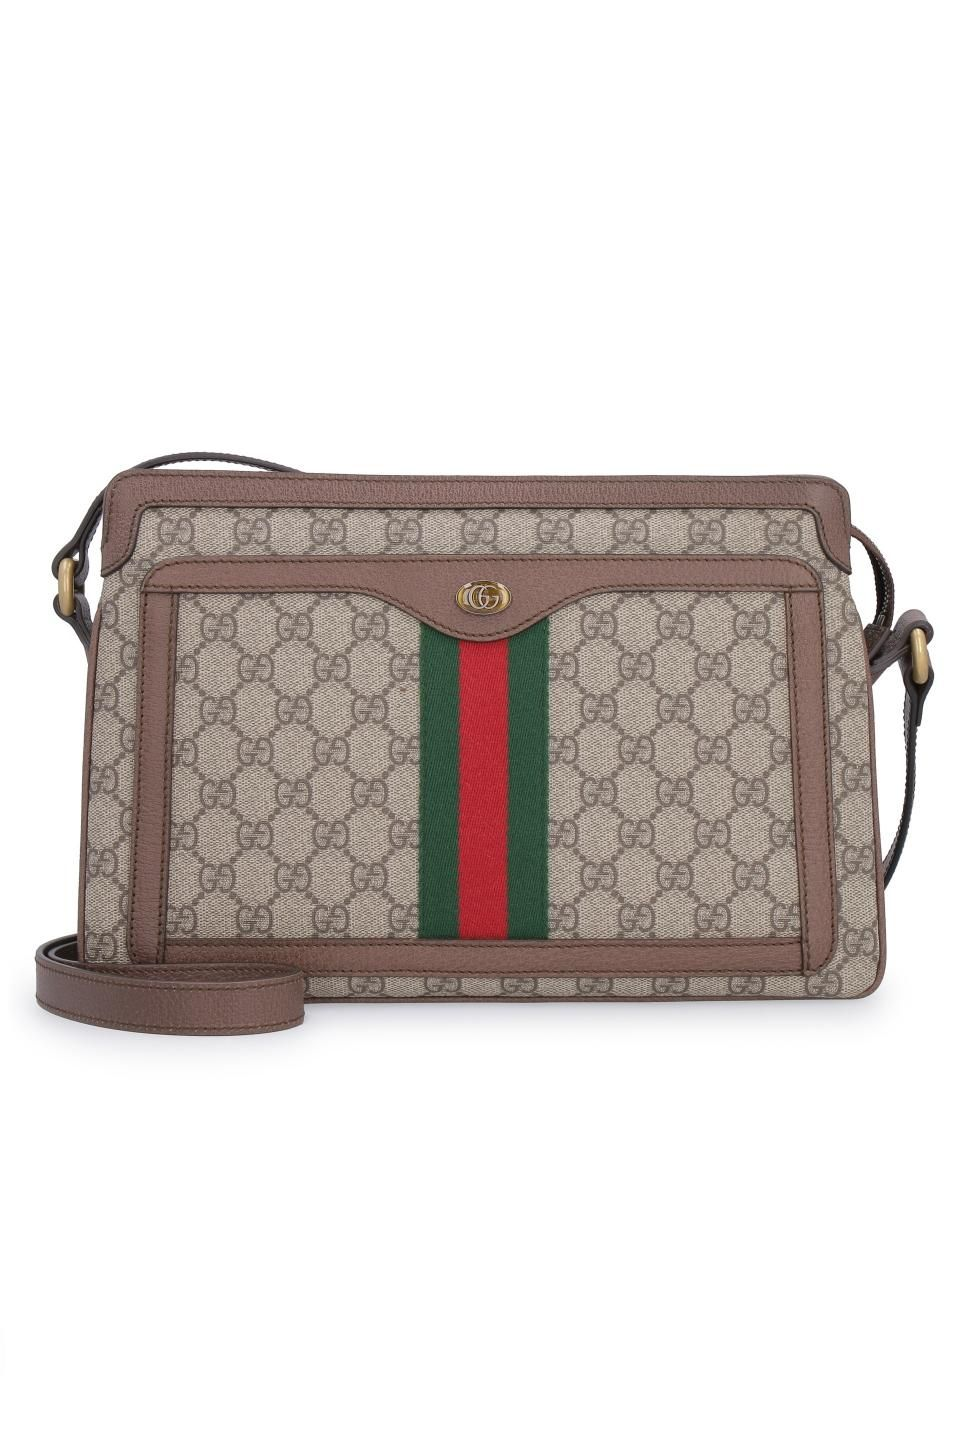 GUCCI GG Supreme单肩包.  gucci  bags  canvas  leather  lining  metallic   shoulder bags  pvc 65a36993740